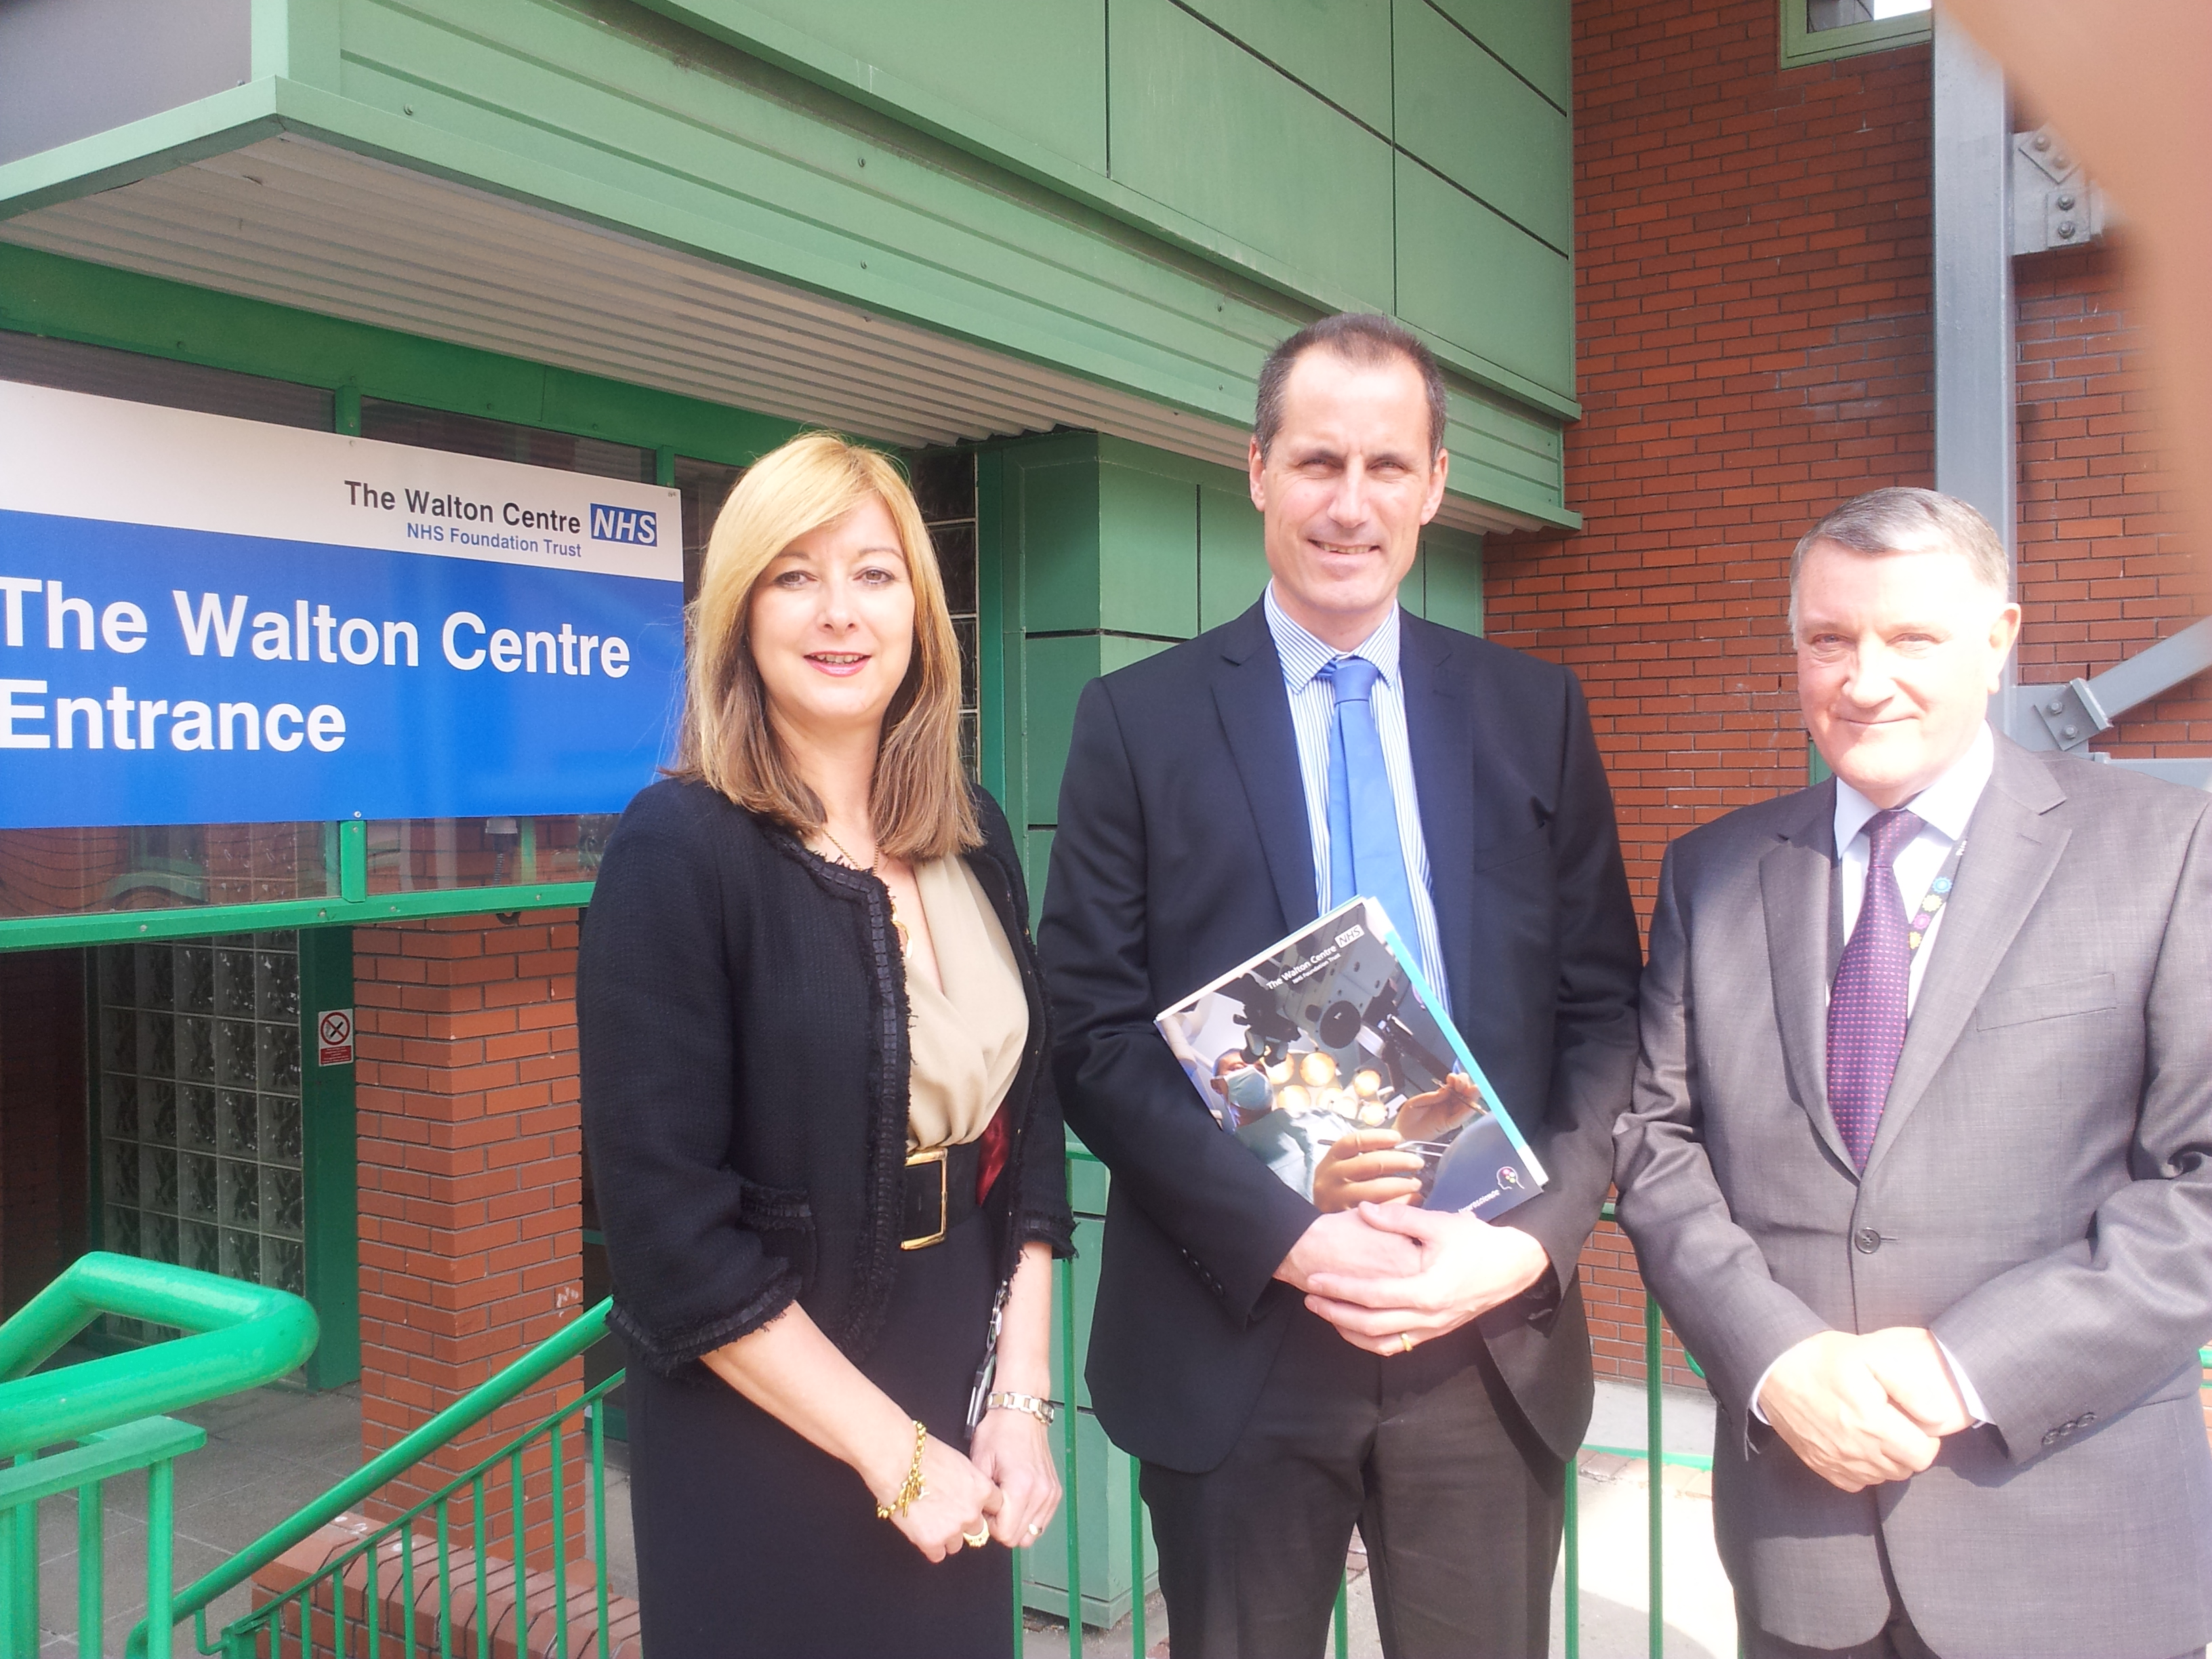 Sefton Central Labour MP Bill Esterson with chief executive Liz Mearns and chairman Ken Hoskisson at the Walton Centre.